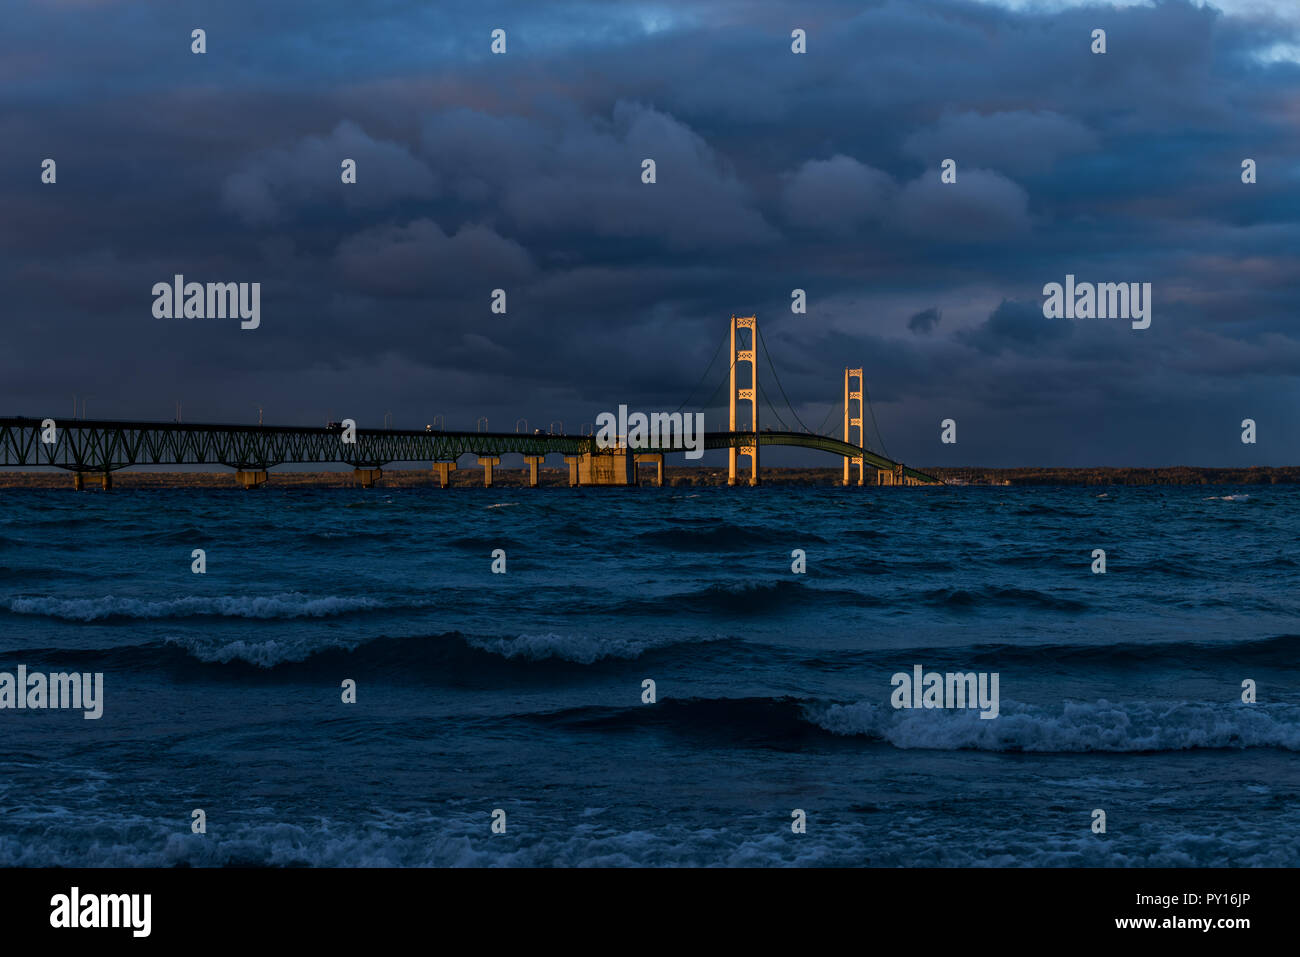 Sunset with stormy clouds light up the Mackinac Bridge spanning the Straits of Mackinac between the upper and lower peninsulas of Michigan, USA. - Stock Image